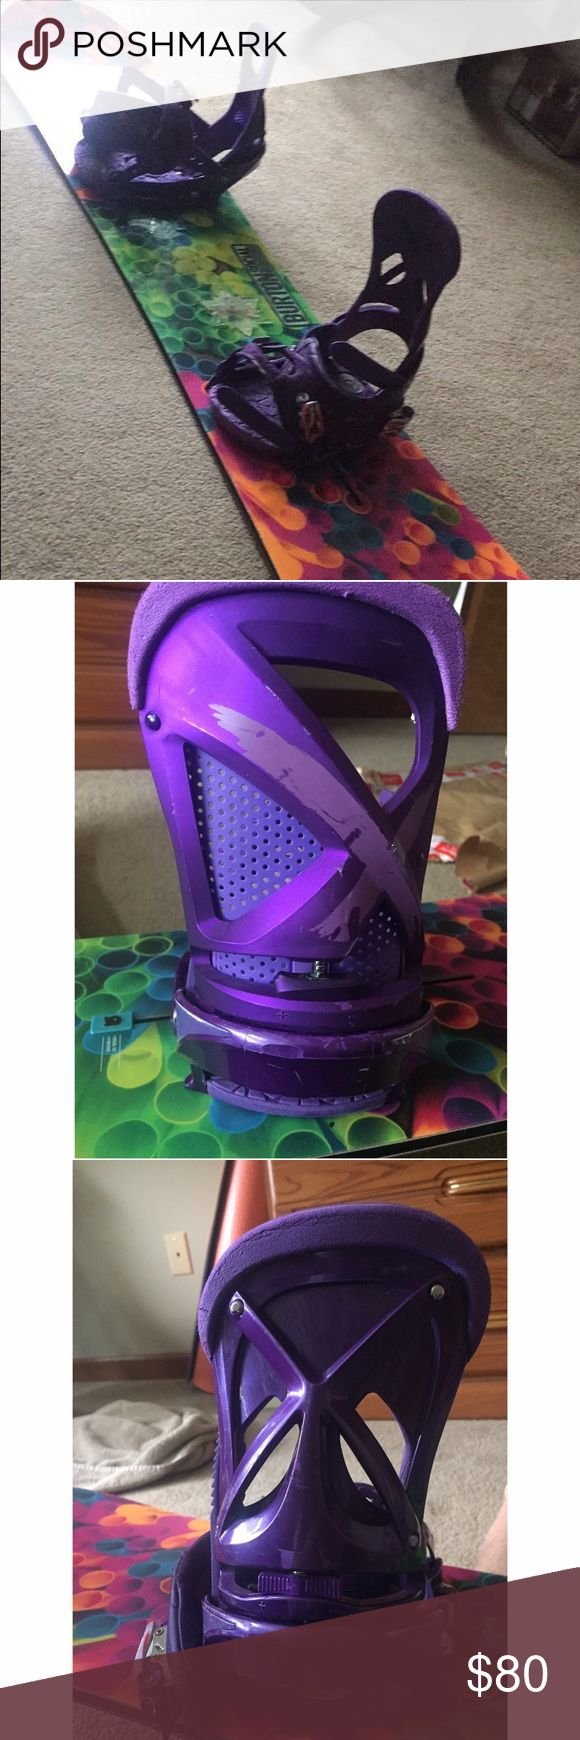 Purple Burton Lexa Channel Bindings  EST Medium Lexa Snowboard Bindings. BINDINGS ONLY. The bindings are still in good shape and very functional. The purple is peeling a bit where boot/pants rubbed. They are both Lexa Bindings but one was replaced and updated that's why they don't match. Any questions please ask!-this info is from the seller that I bought my board/bindings from. Burton Other